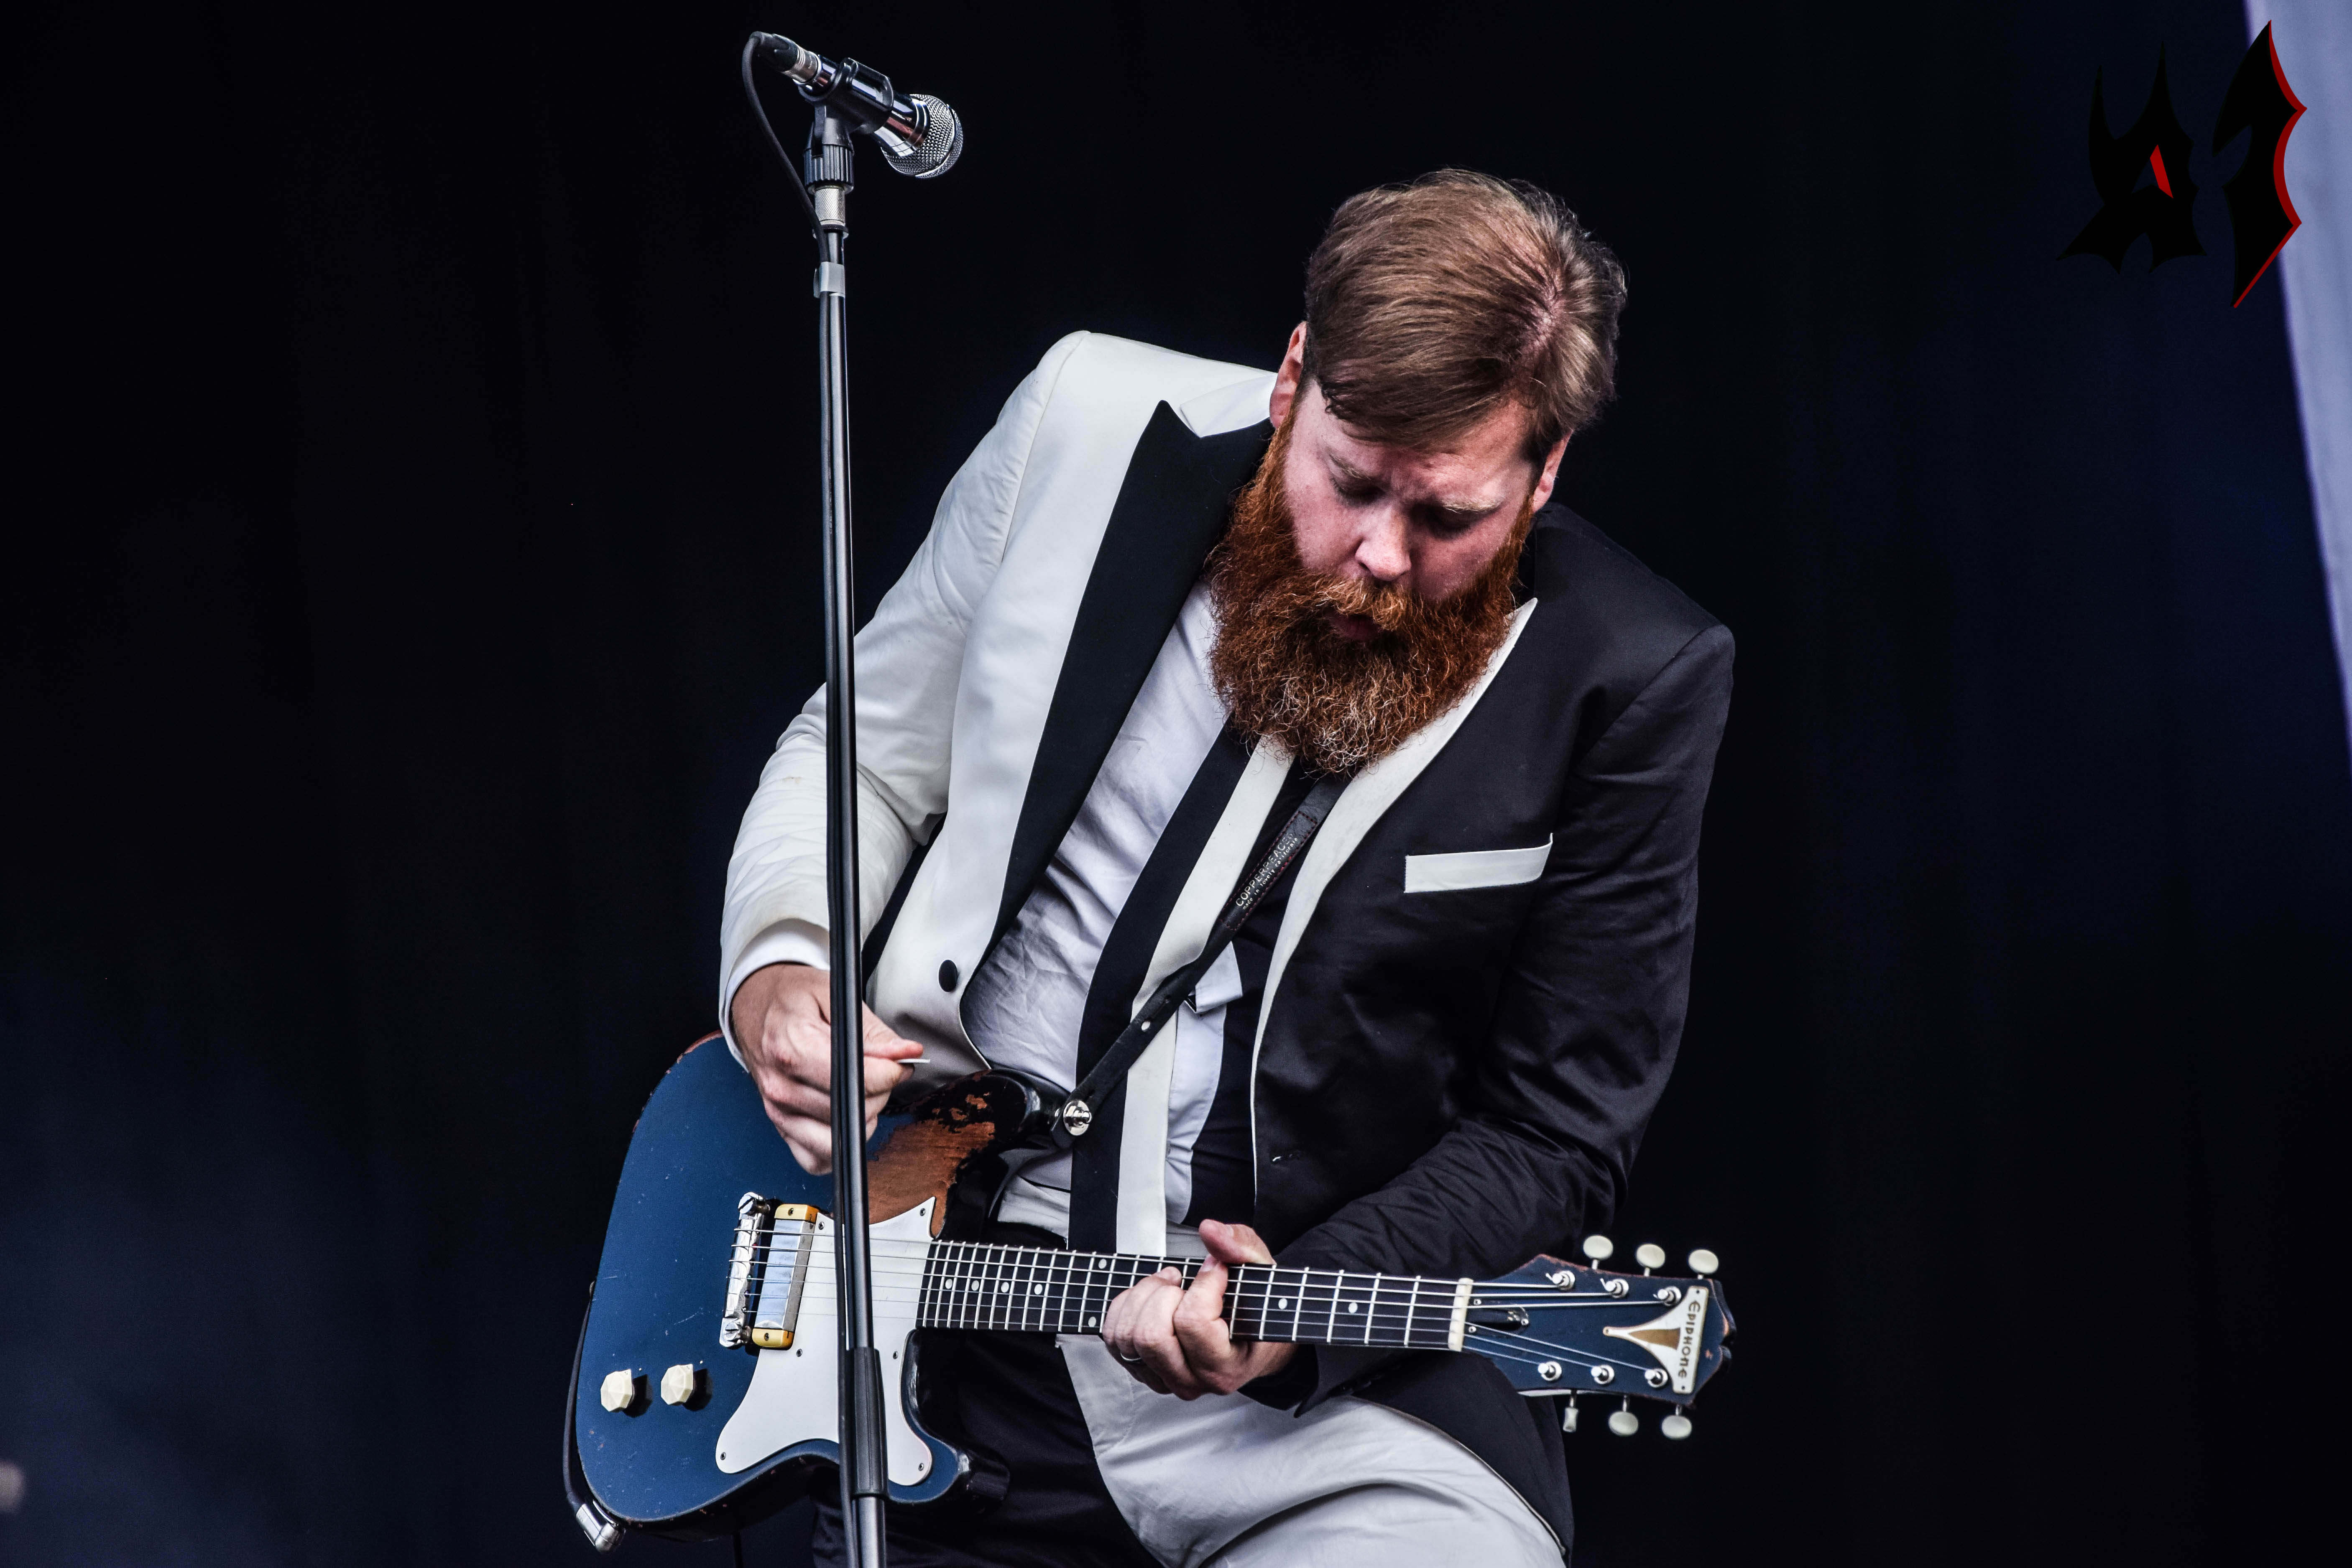 Donwload 2018 – Day 3 - The Hives 5